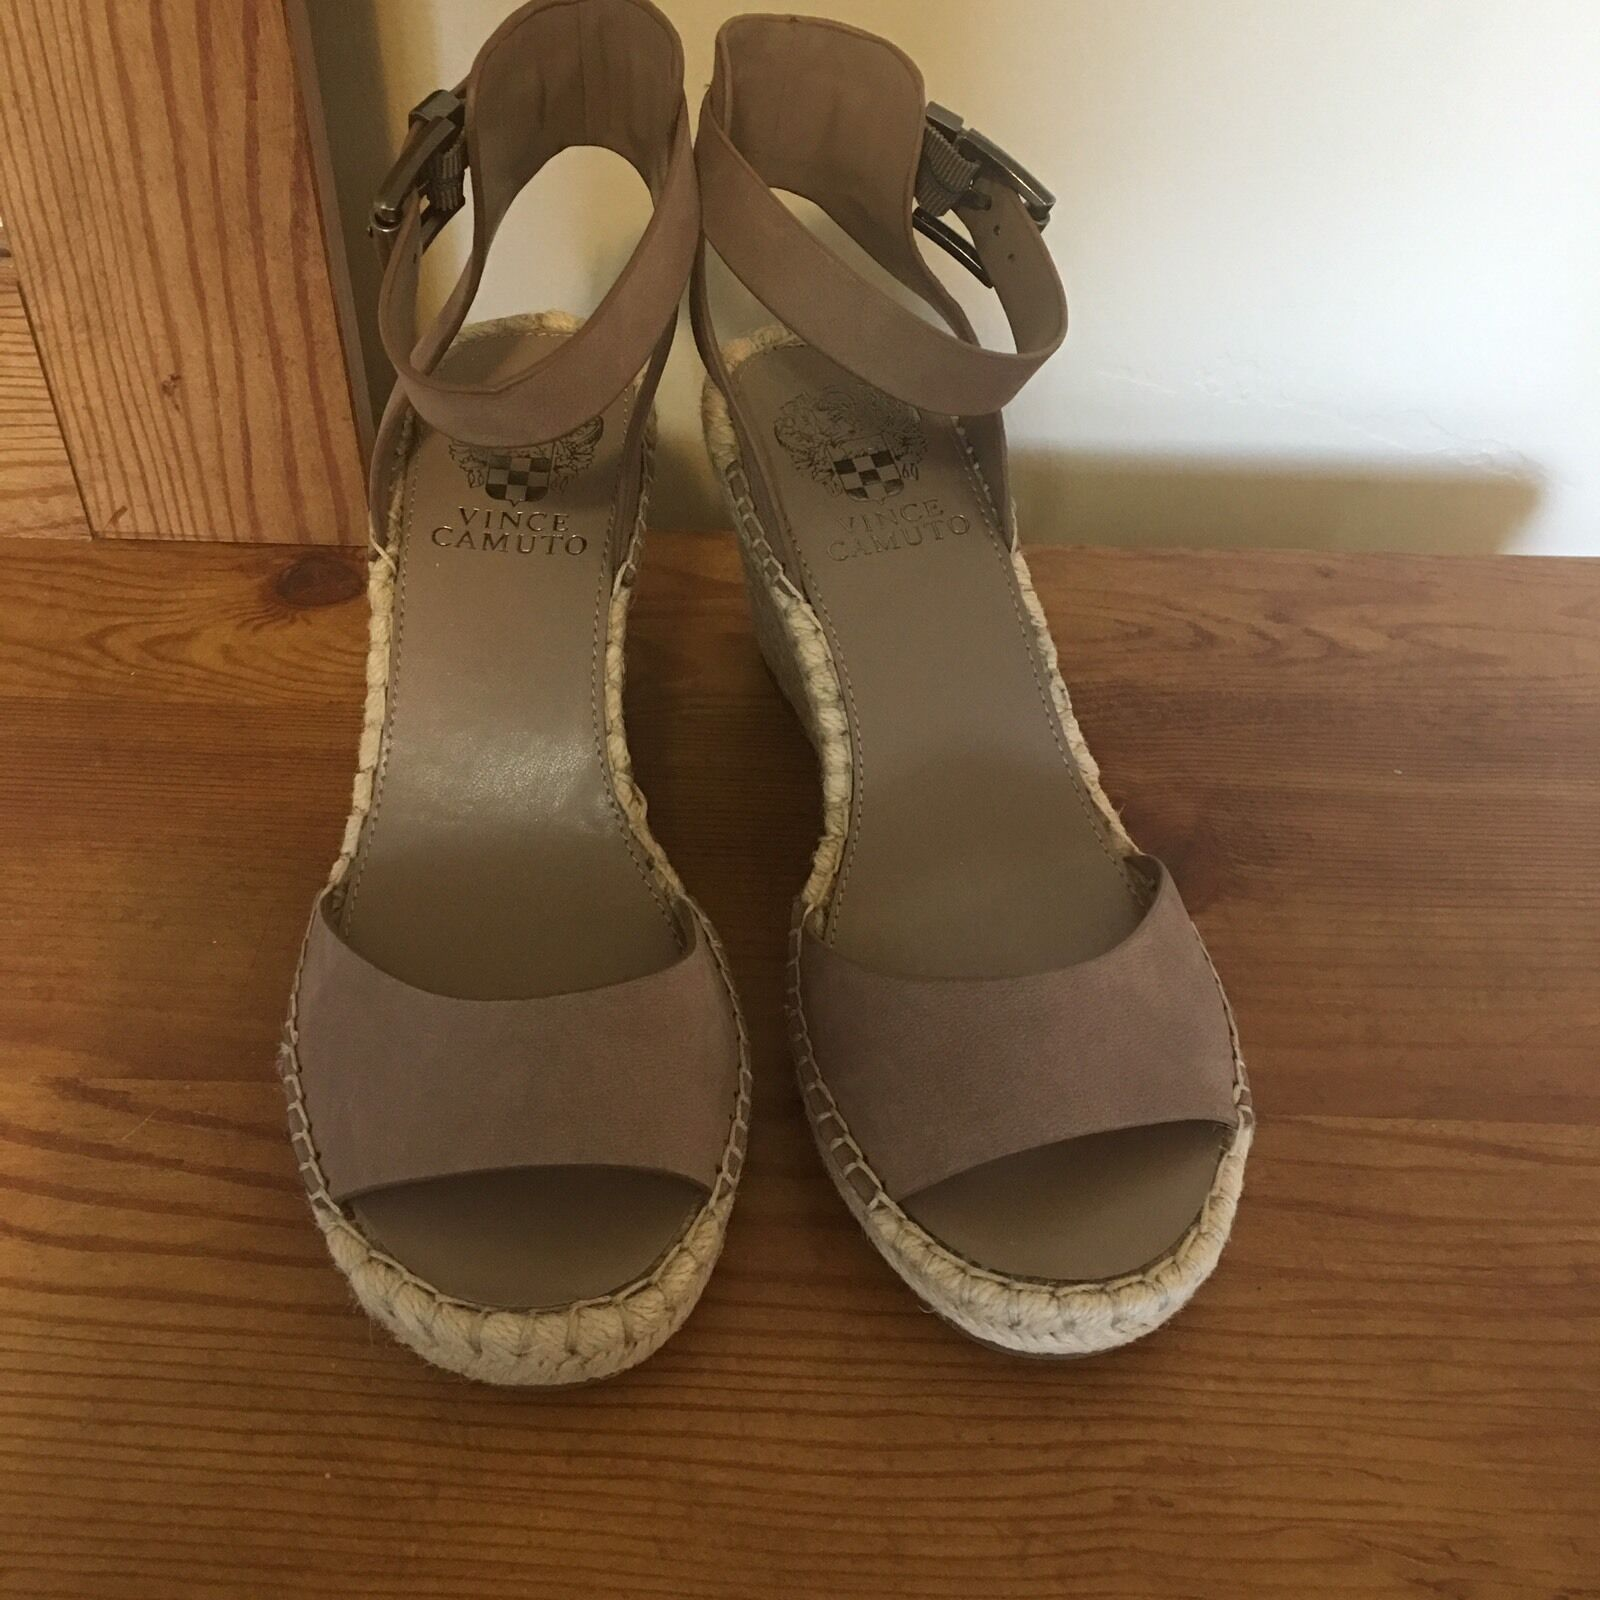 Vince Camuto Tagger Espadrille Leather Wedge Open 10 Toe Taupe Sandal Heel 10 Open M c07b77